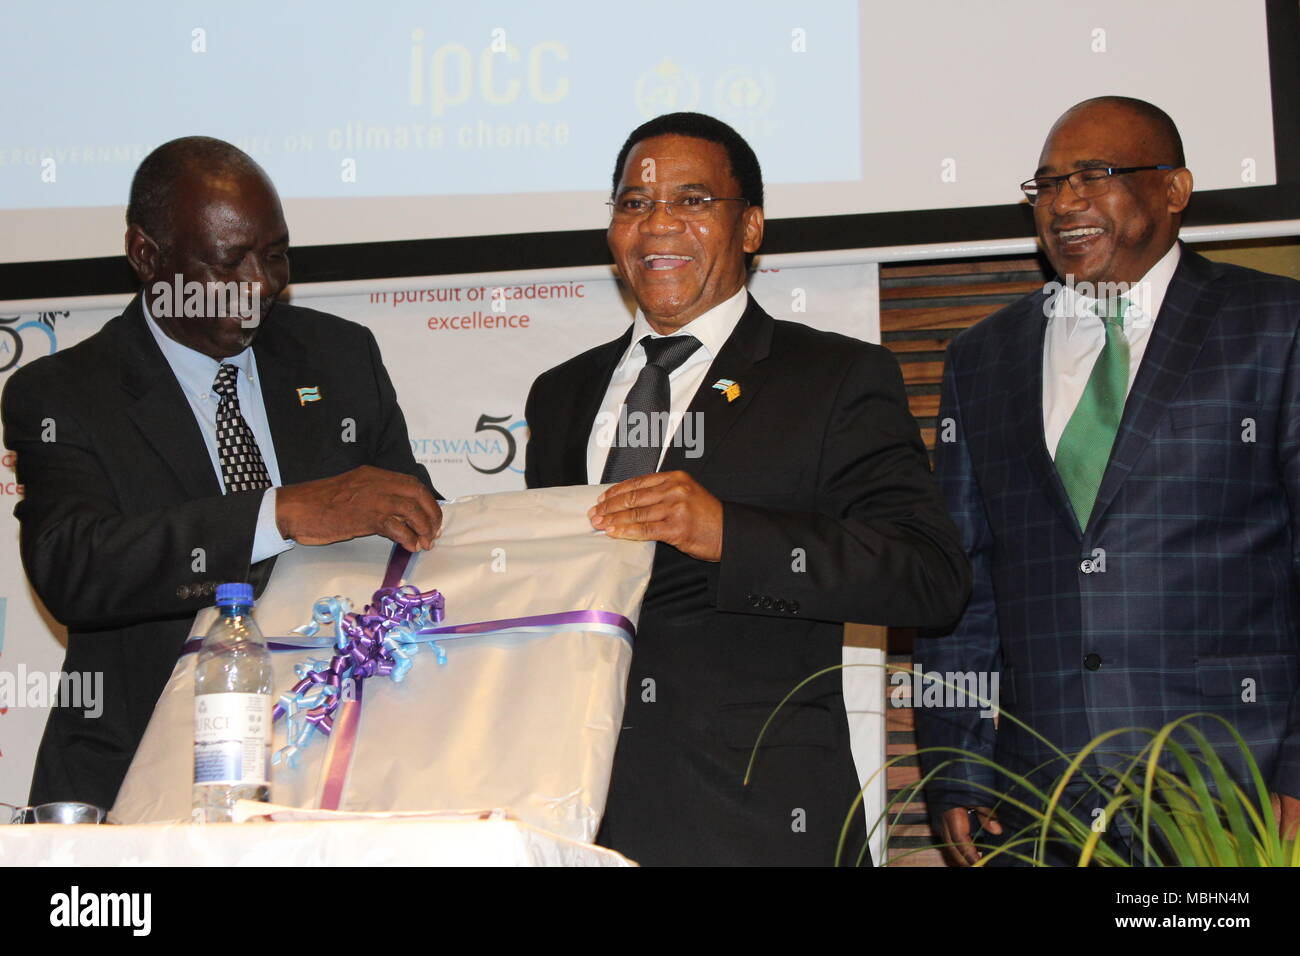 Gaborone, Botswana. 9th Apr, 2018. Botswana's new Vice President, Slumber Tsogwane receiving a gift from the University of Botswana after delivering an opening speech at the Inter-governmental Panel on Climate Change's (IPCC) 4th Lead Author Meeting (LAM4) for the Special Report on: Global Warming of 1.5 degrees Celsius. The theme for this year is ''˜The Paris Agreement Ambition to limit global warming to well below 20C and the IPCC meeting in Botswana. The event was held at the University of Botswana's International Conference Center. (Credit Image: © Sharon Tshipa/SOPA Images via ZUM - Stock Image